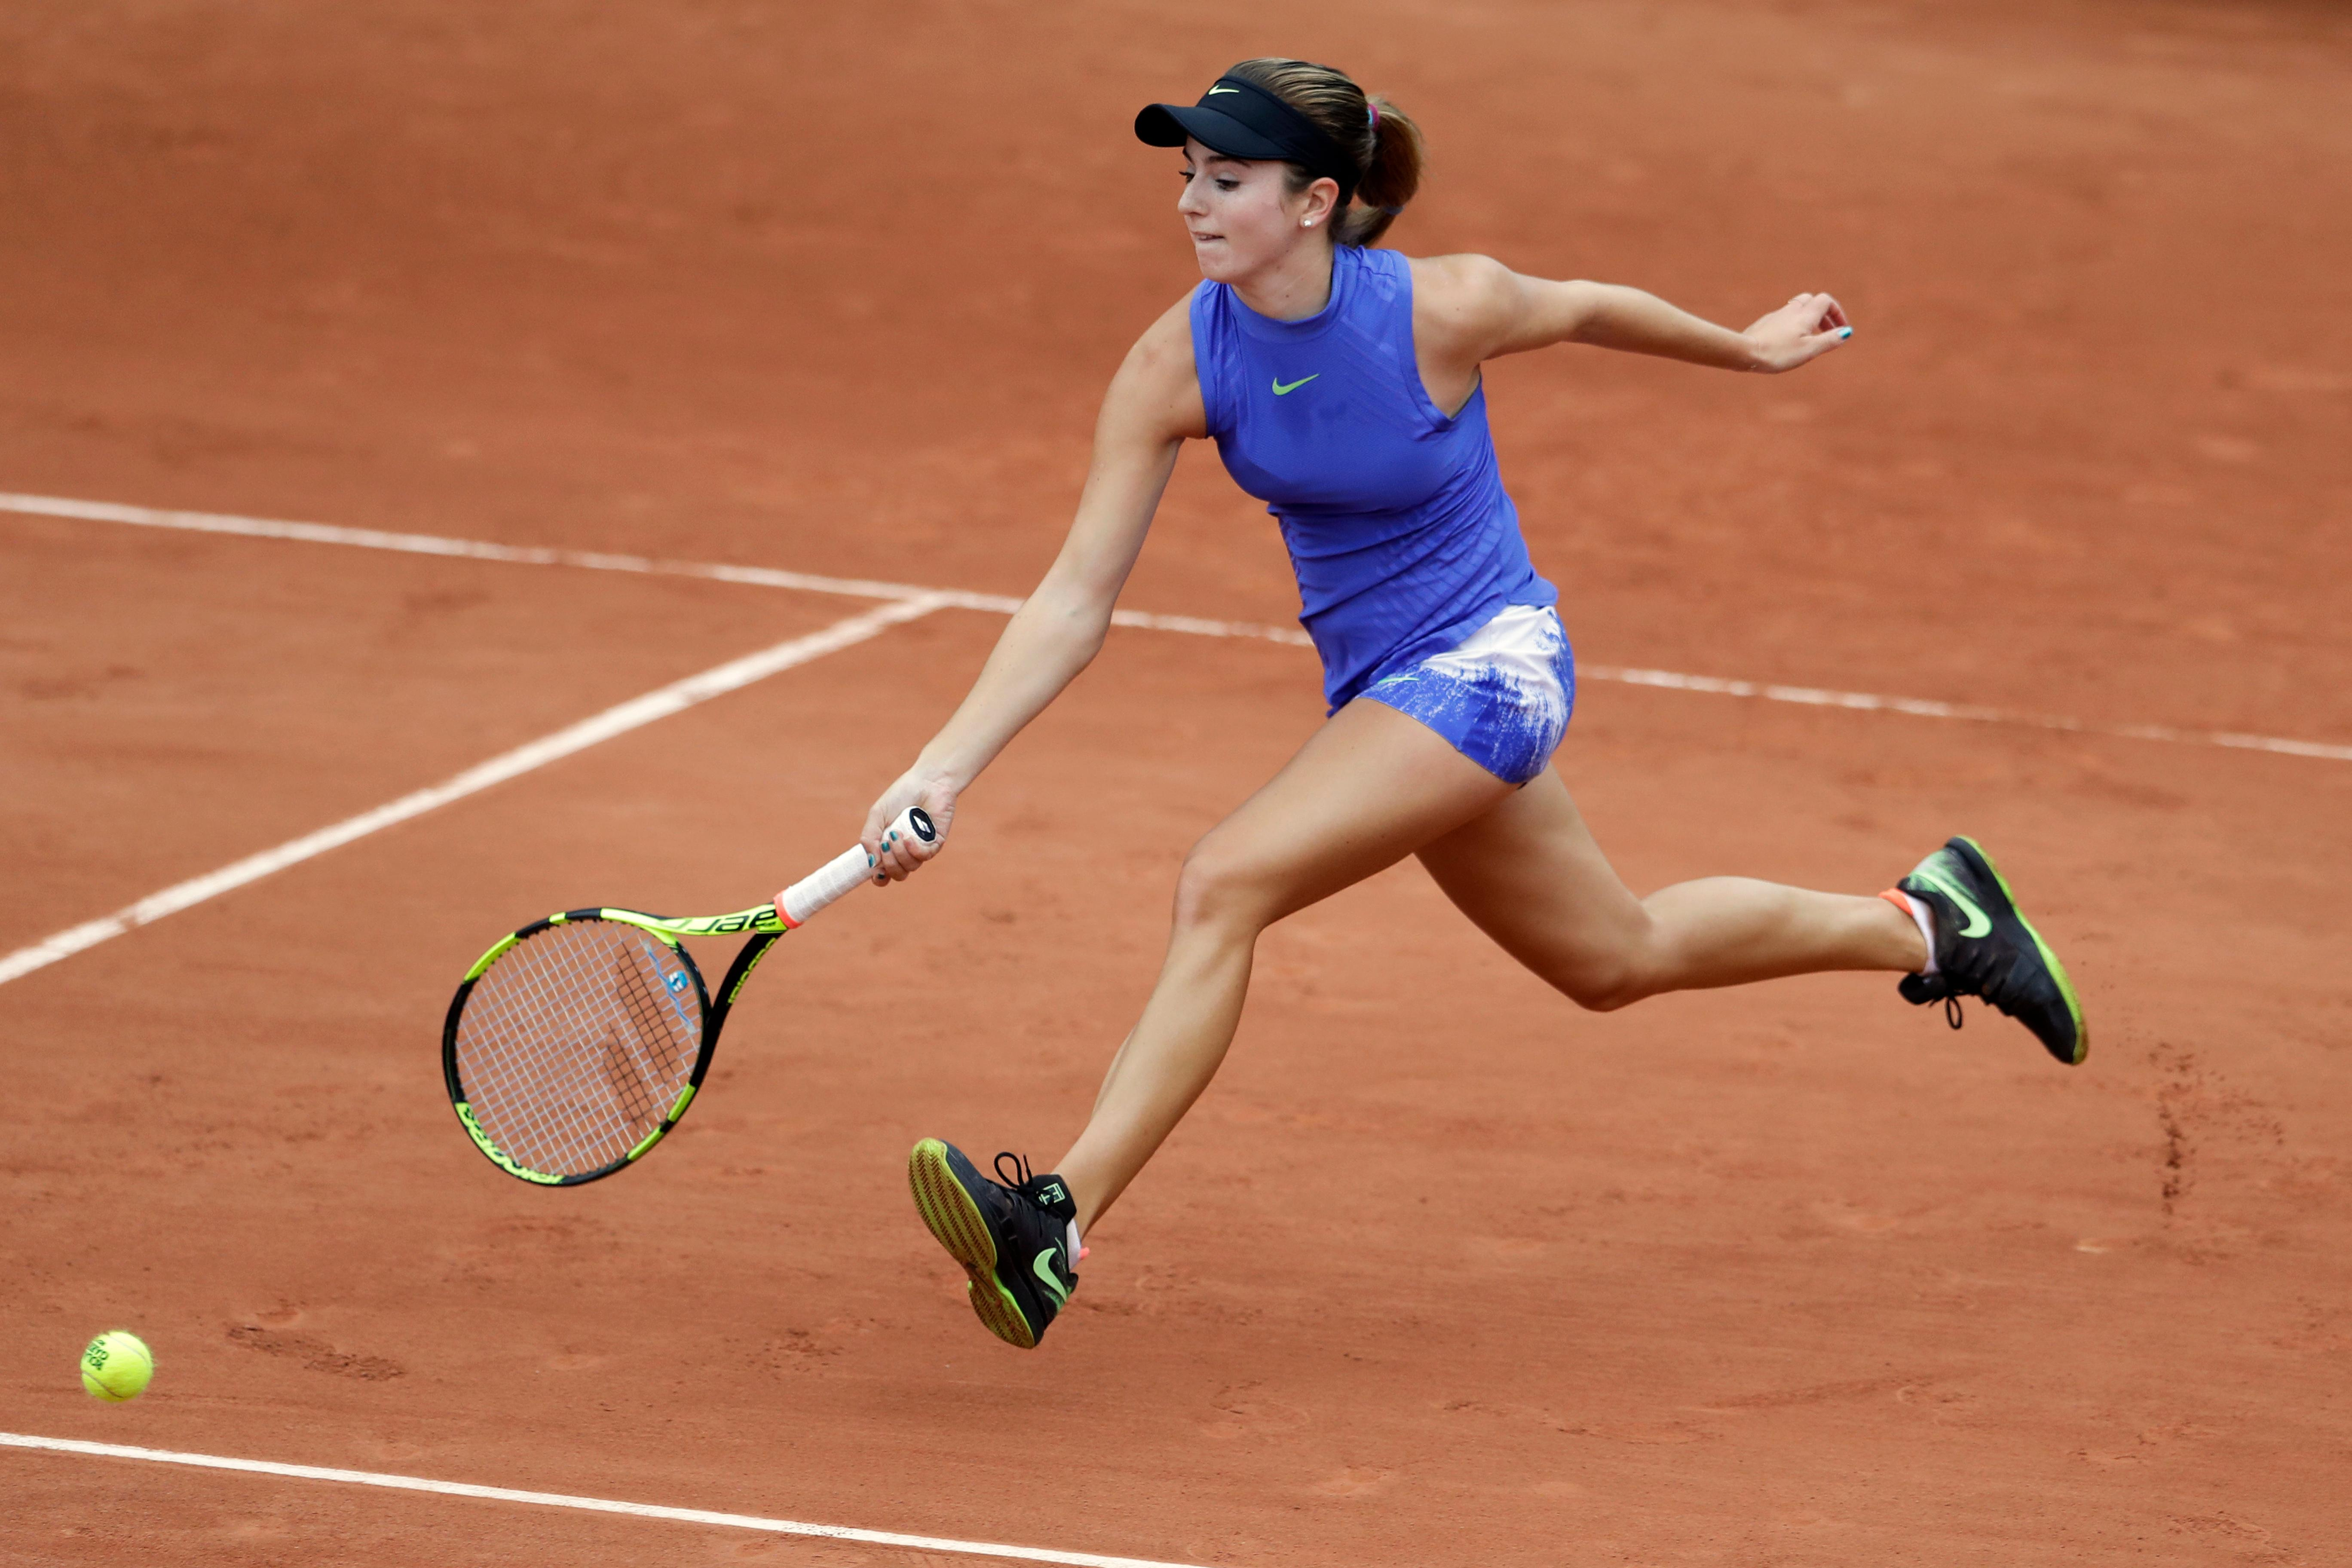 Catherine Bellis of the U.S. plays a shot against Denmark's Caroline Wozniacki during their third round match of the French Open tennis tournament at the Roland Garros stadium, in Paris, France. Saturday, June 3, 2017. (AP Photo/Petr David Josek)